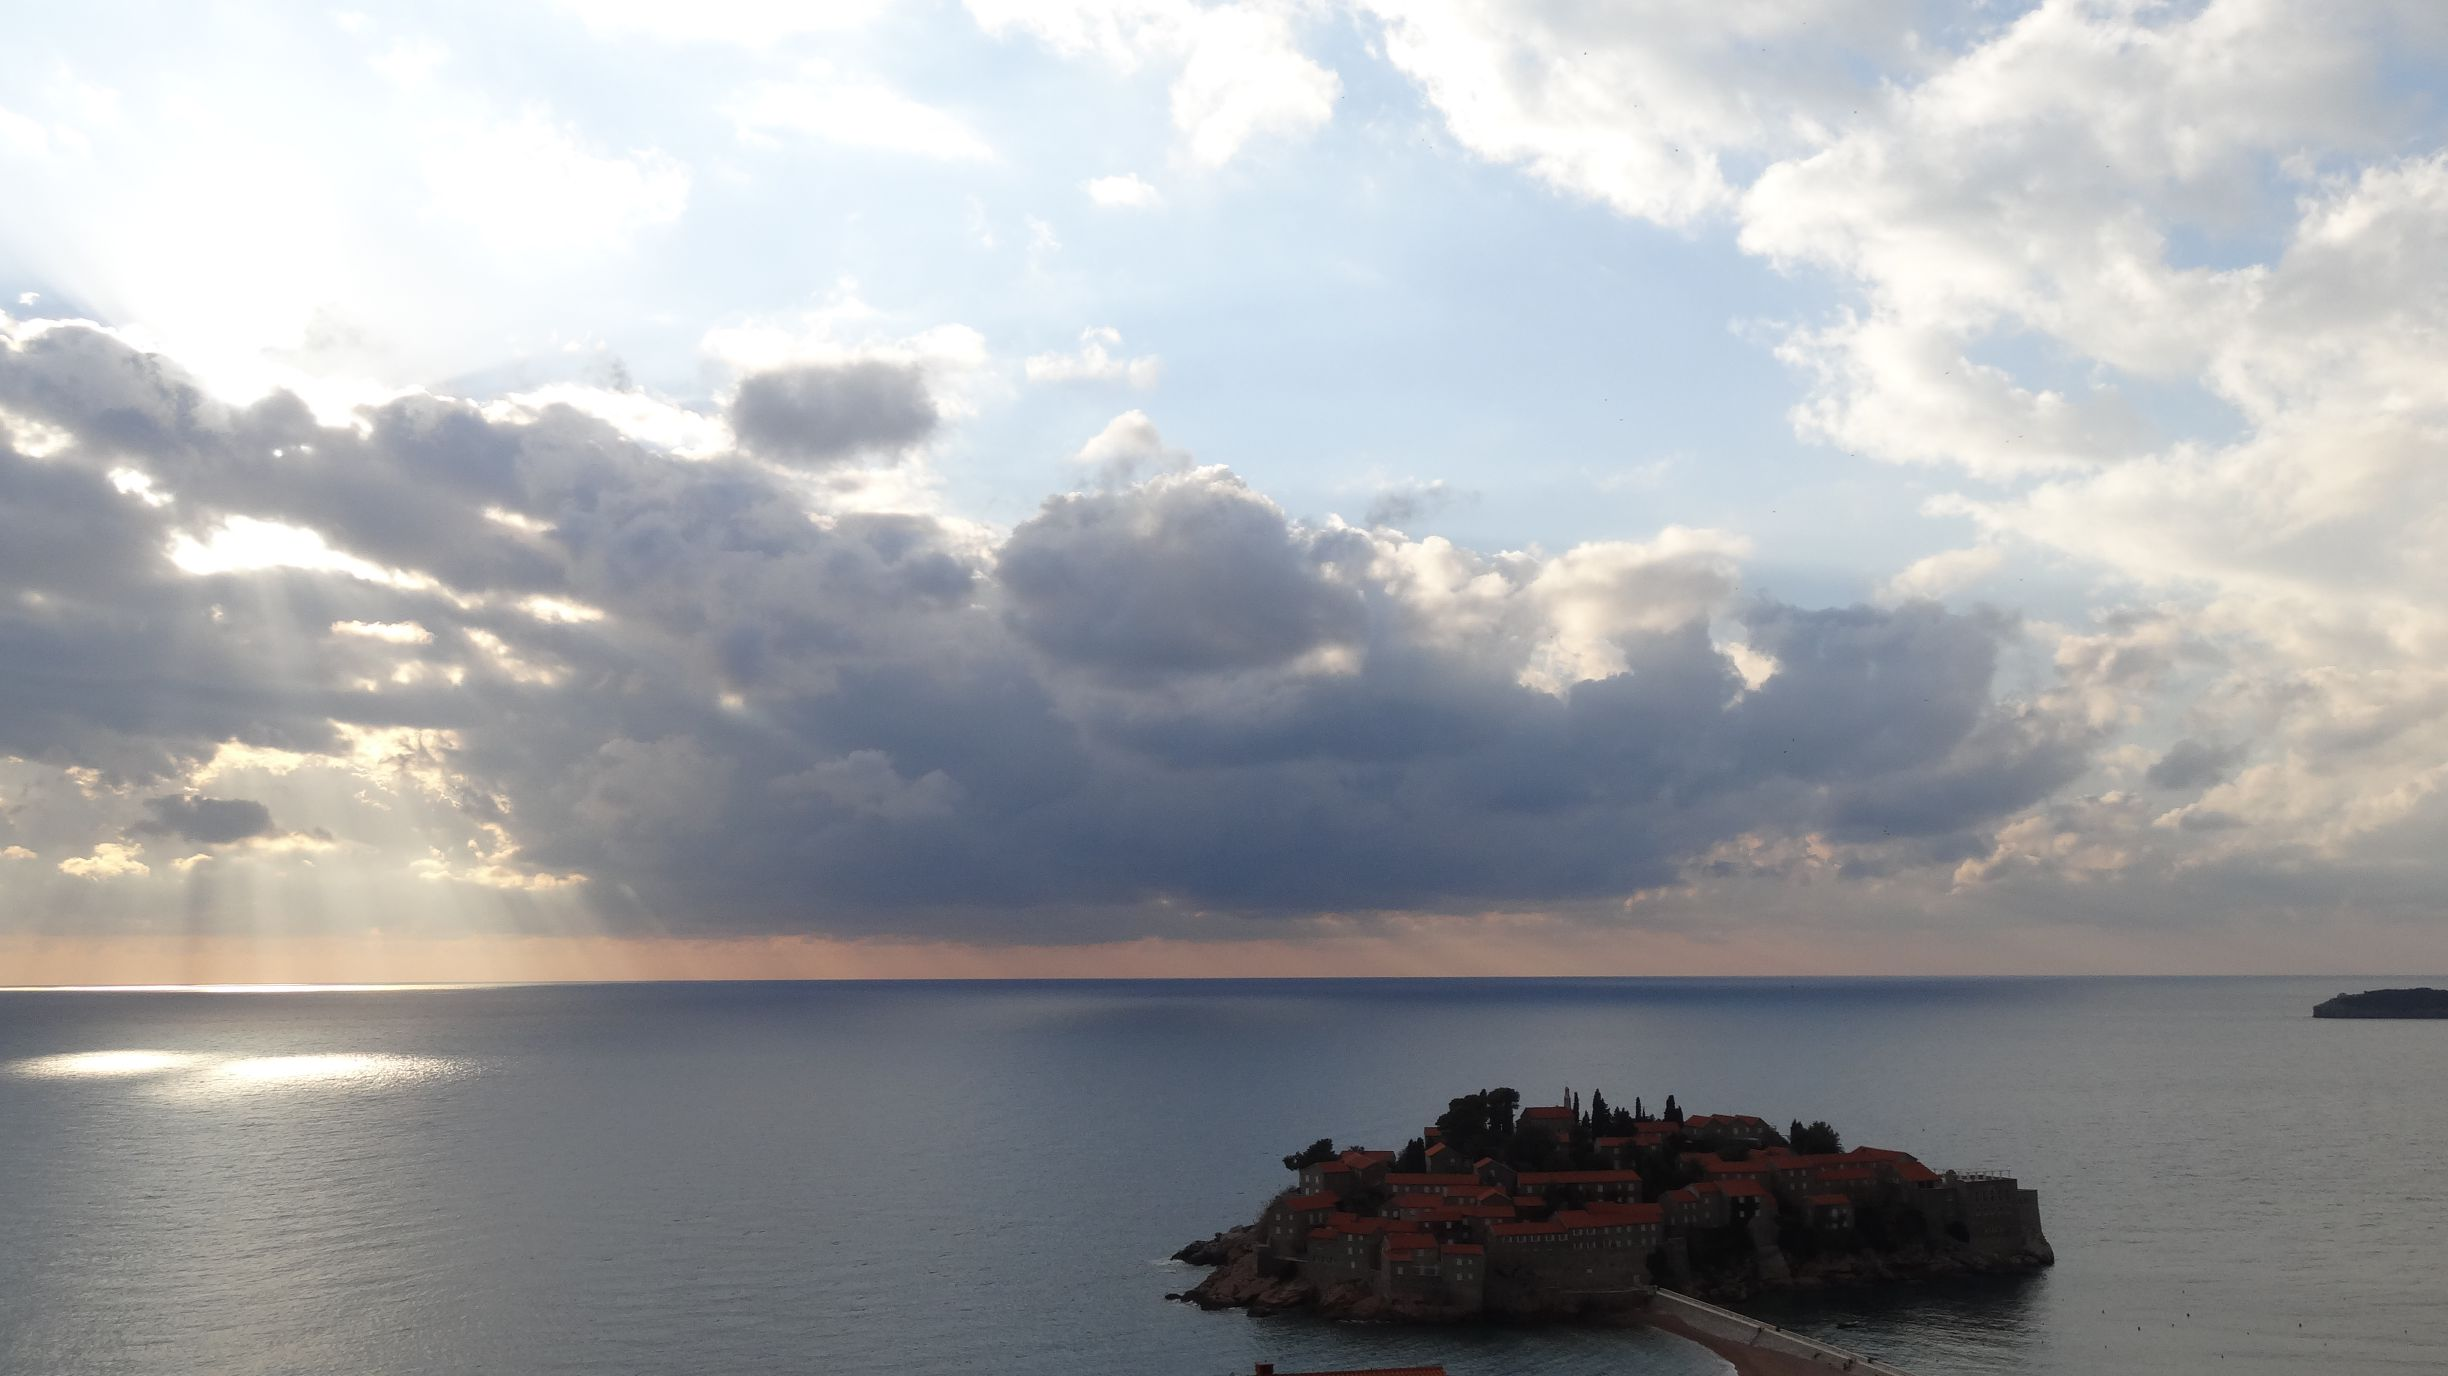 Sveti Stefan - once a fishing town, now an island hotel